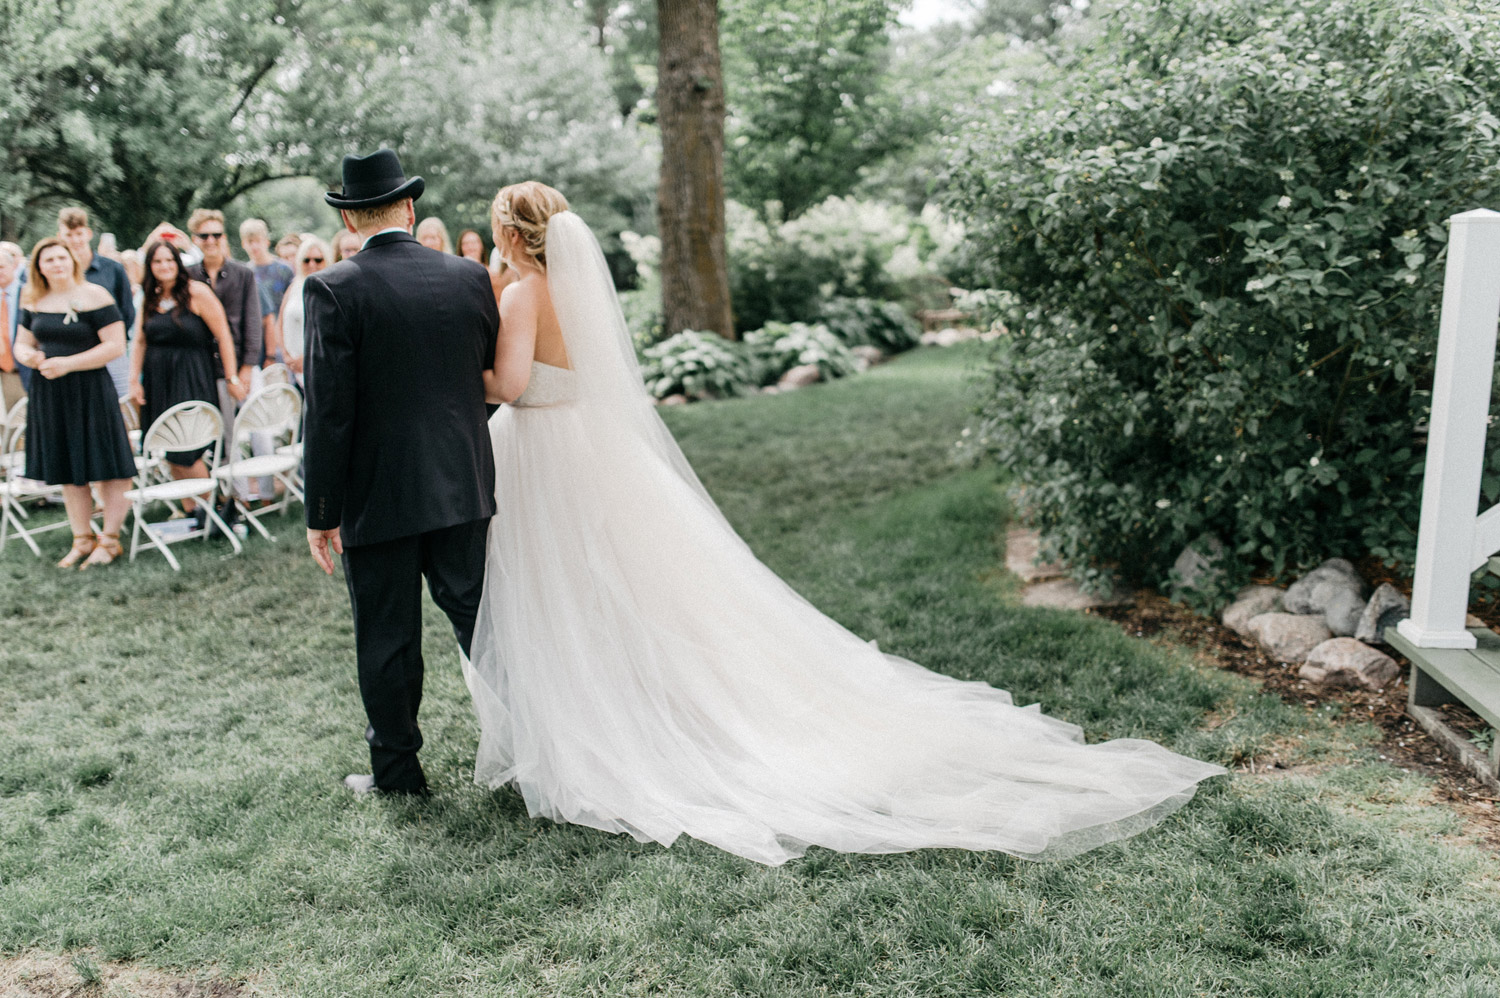 Bride and father walking down the aisle during ceremony at rustic oaks